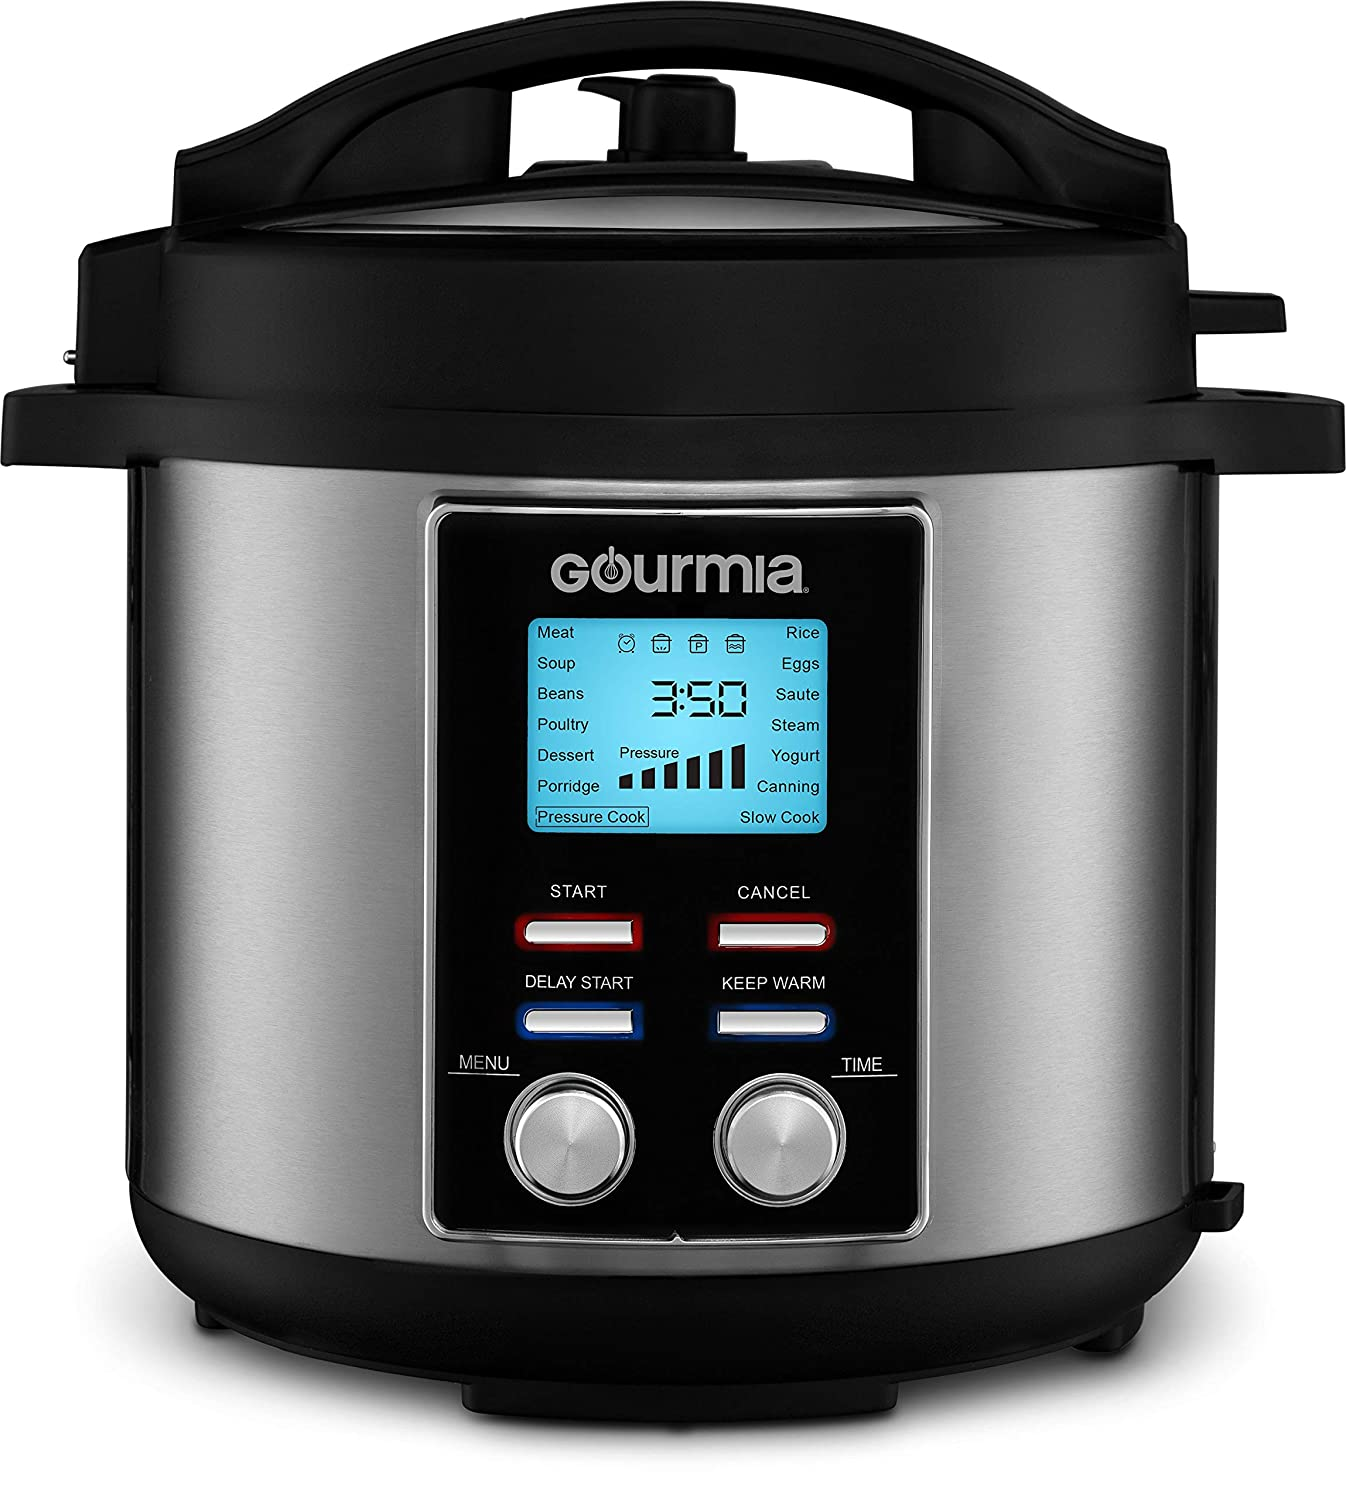 Gourmia GPC655 6 Qt Digital SmartPot Multi-Function Pressure Cooker | 15 Cook Modes | Removable Nonstick Pot | 24-Hour Delay Timer | Automatic Keep Warm | LCD Display | Pressure Sensor Lid Lock